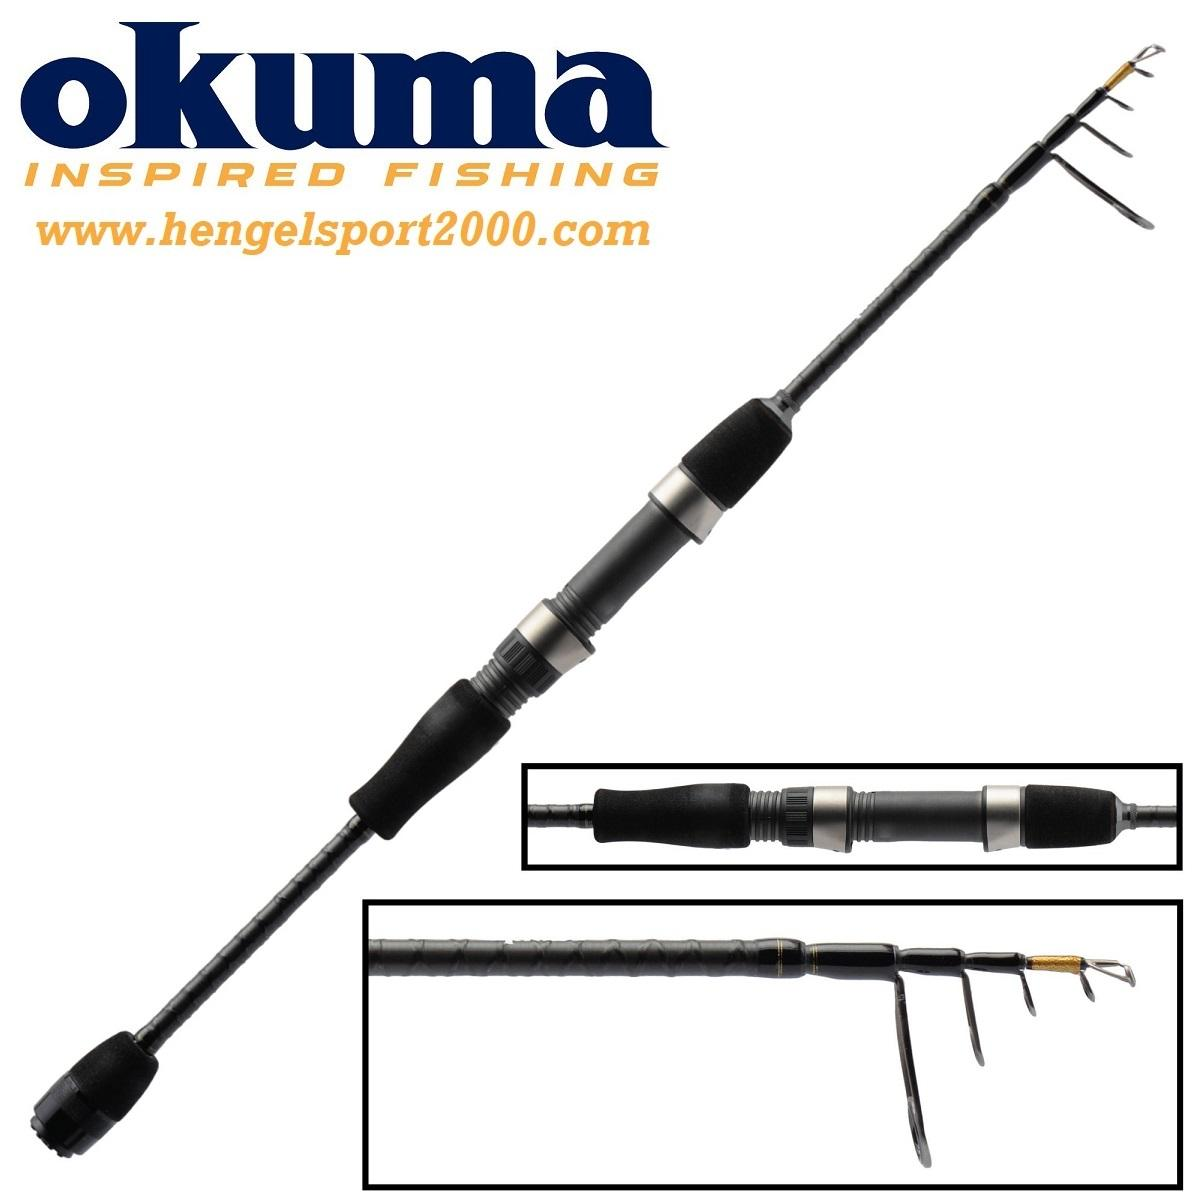 Okuma Light Range Fishing Tele Spin 225 cm 8 - 22 gram